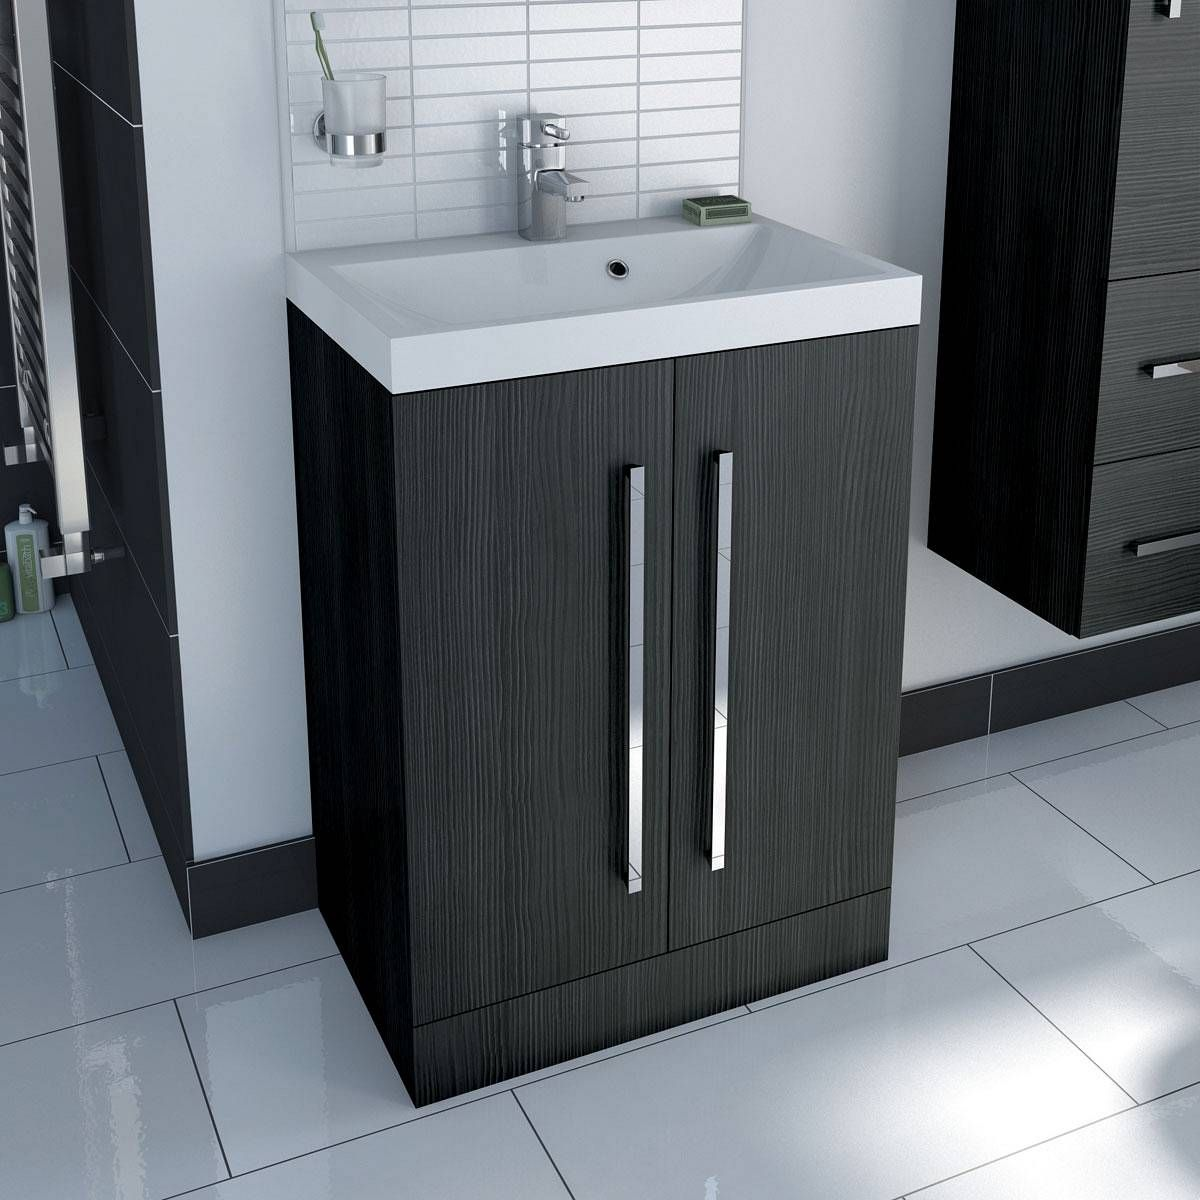 The Drift Grey Furniture Range Is A Superb Addition To Any Bathroom With A Contemporary